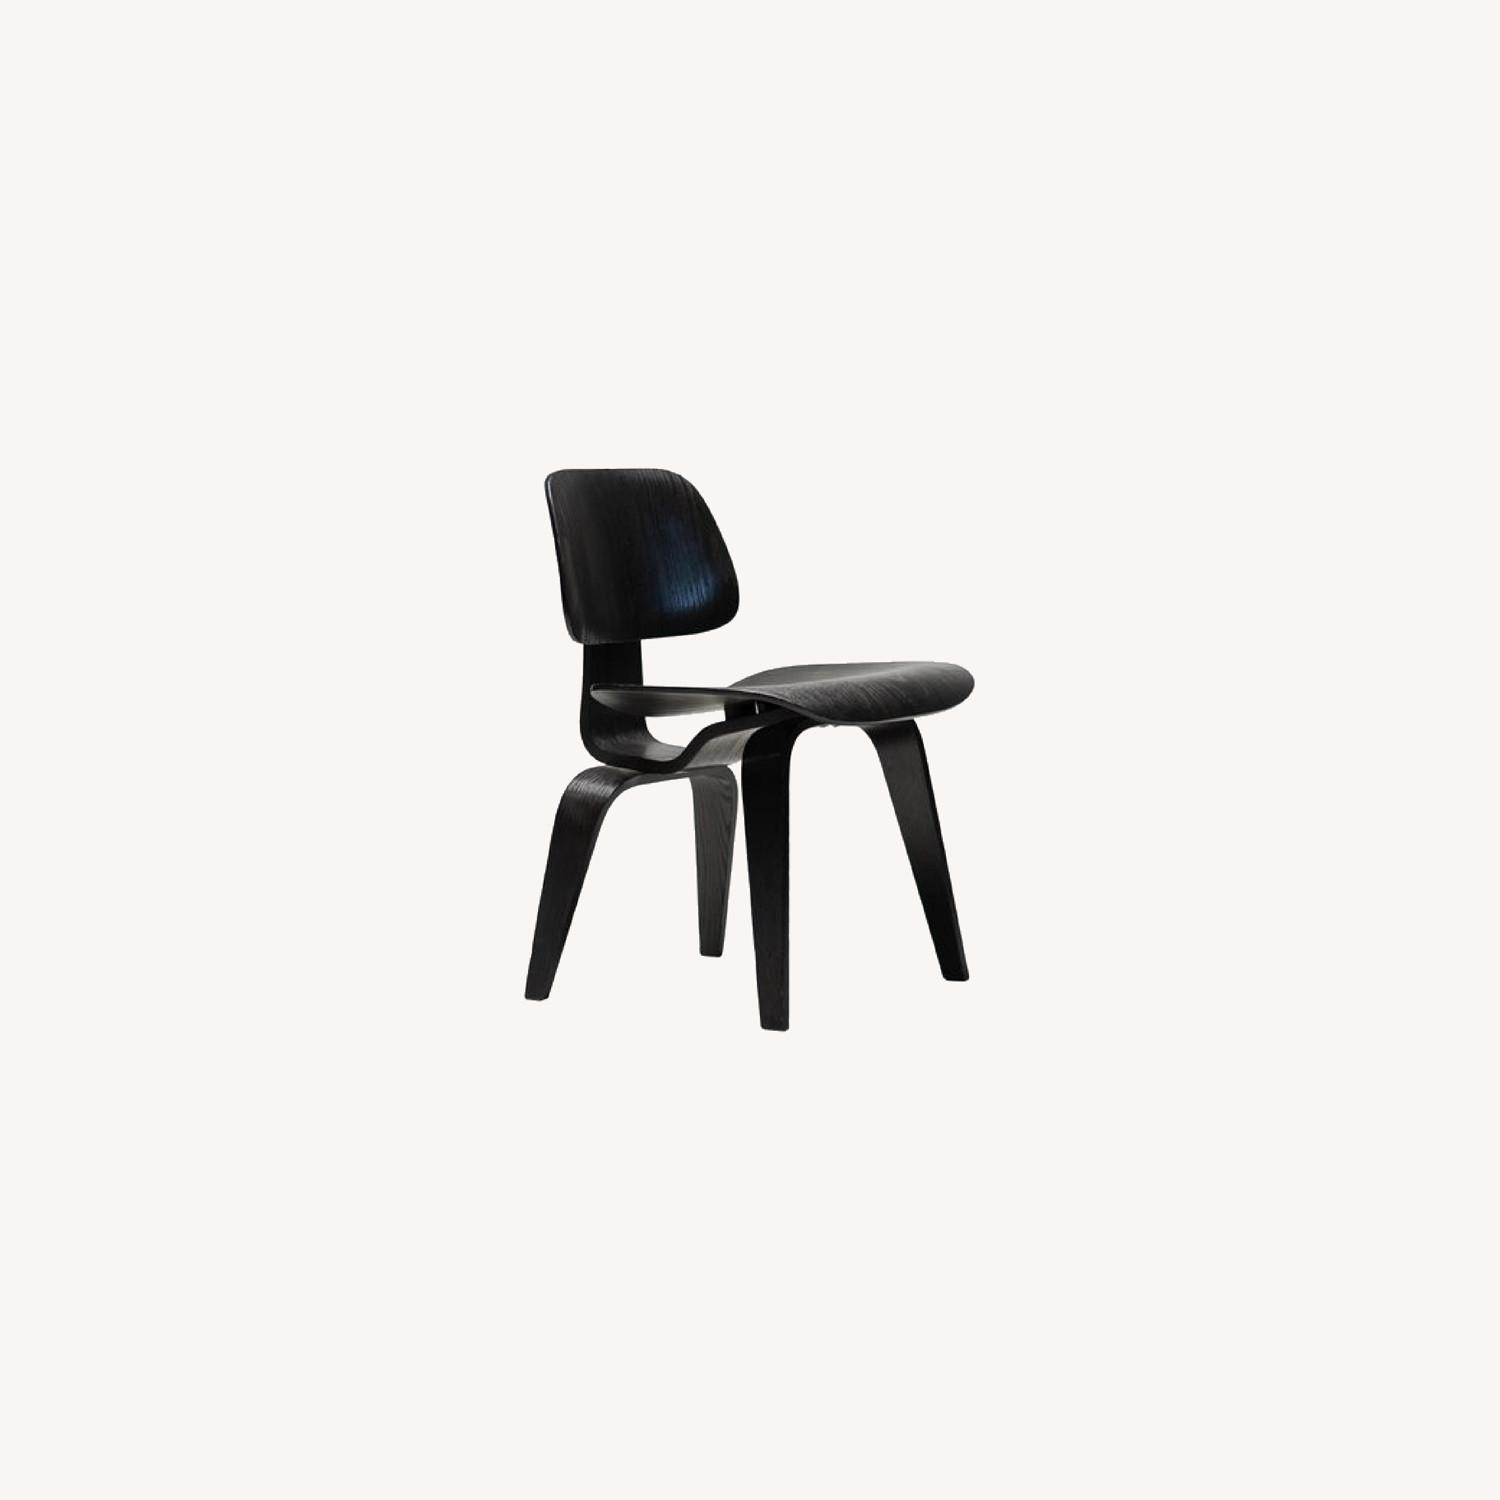 Herman Miller Eames Vintage DCW Chair in Ebony - image-20